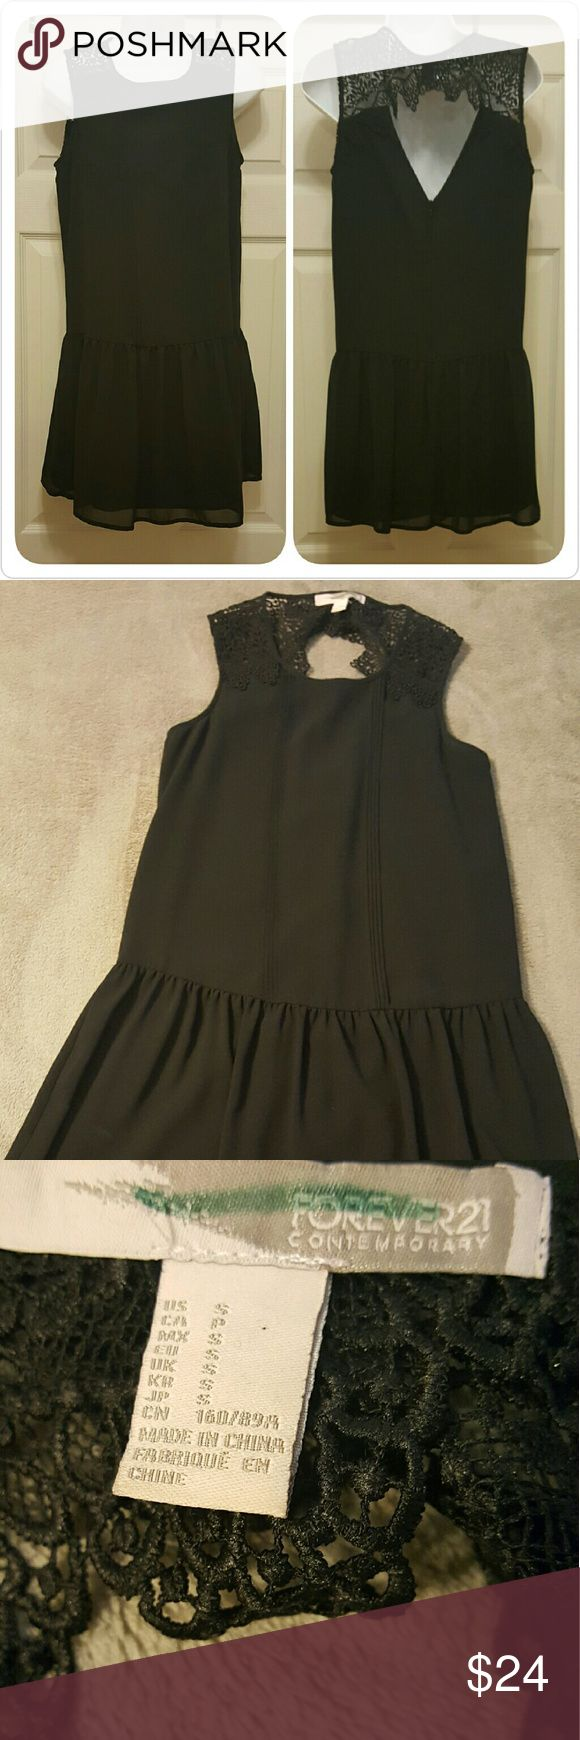 Black dress with crochet detail All occasion dress that is fully lined, sleeveless. Pair with a nice blazer or jacket or just save it for the summer. No flaws at all Forever 21 Dresses Midi